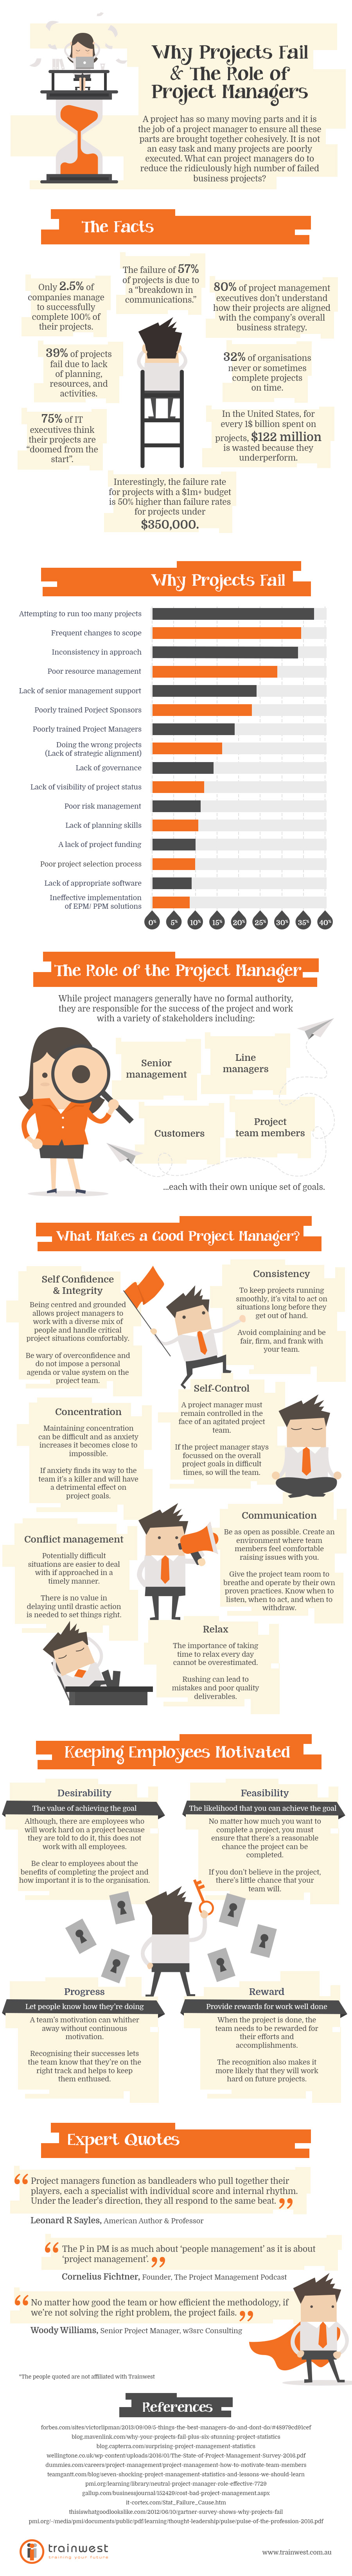 Why-Projects-Fail-and-The-Role-of-Project-Managers.jpg